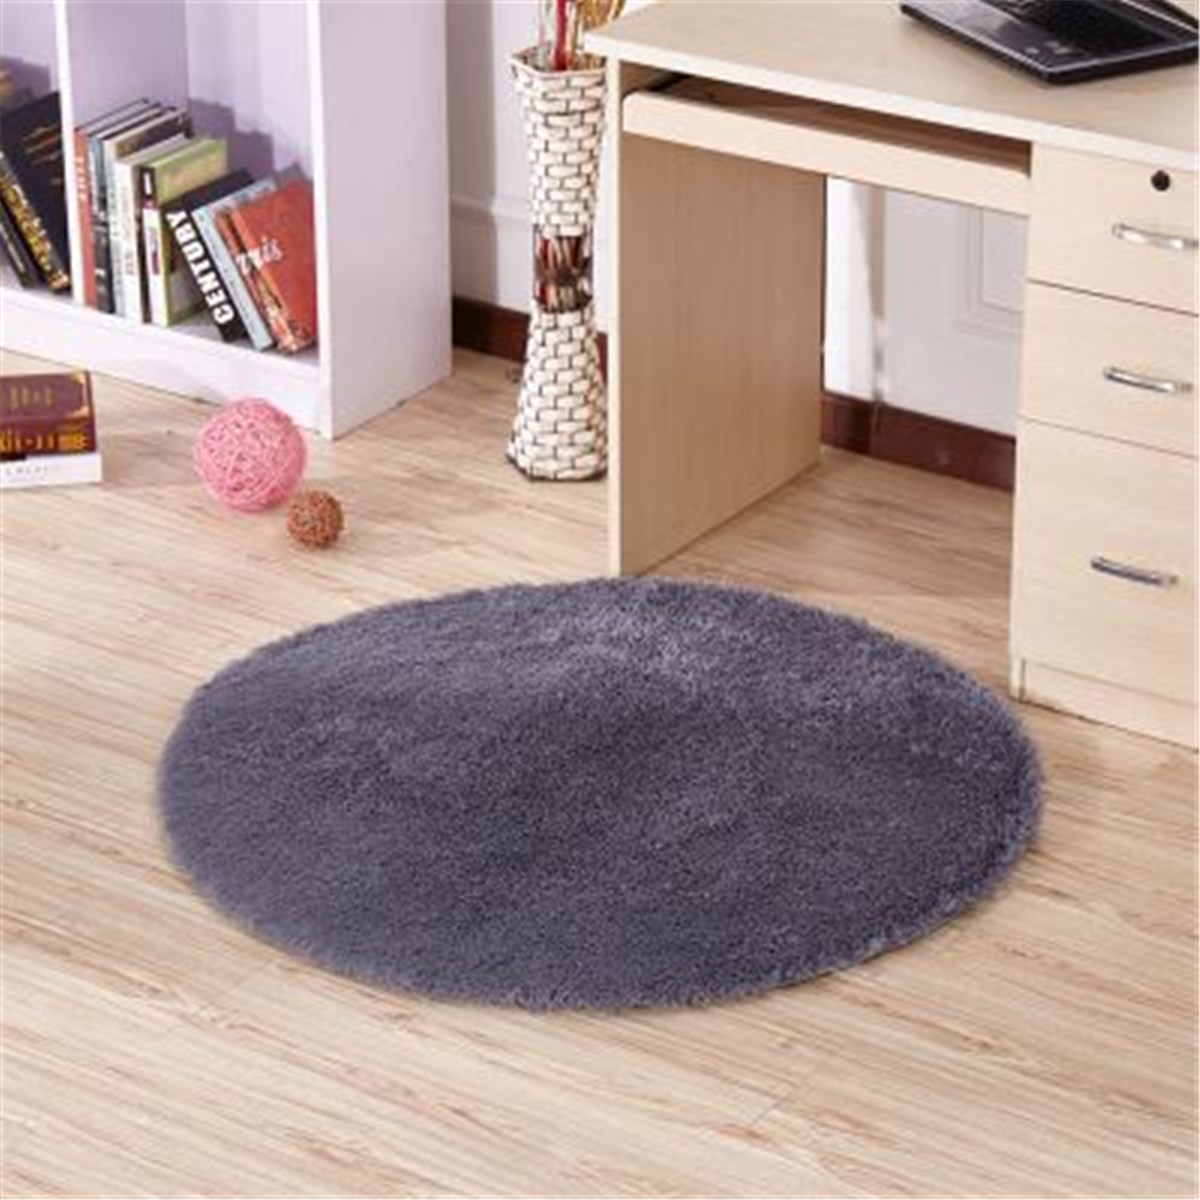 Floor mats and carpets - Grey Floor Mats Modern Shaggy Round Rugs And Carpets Non Slip Shower Living Room Bedroom Carpet